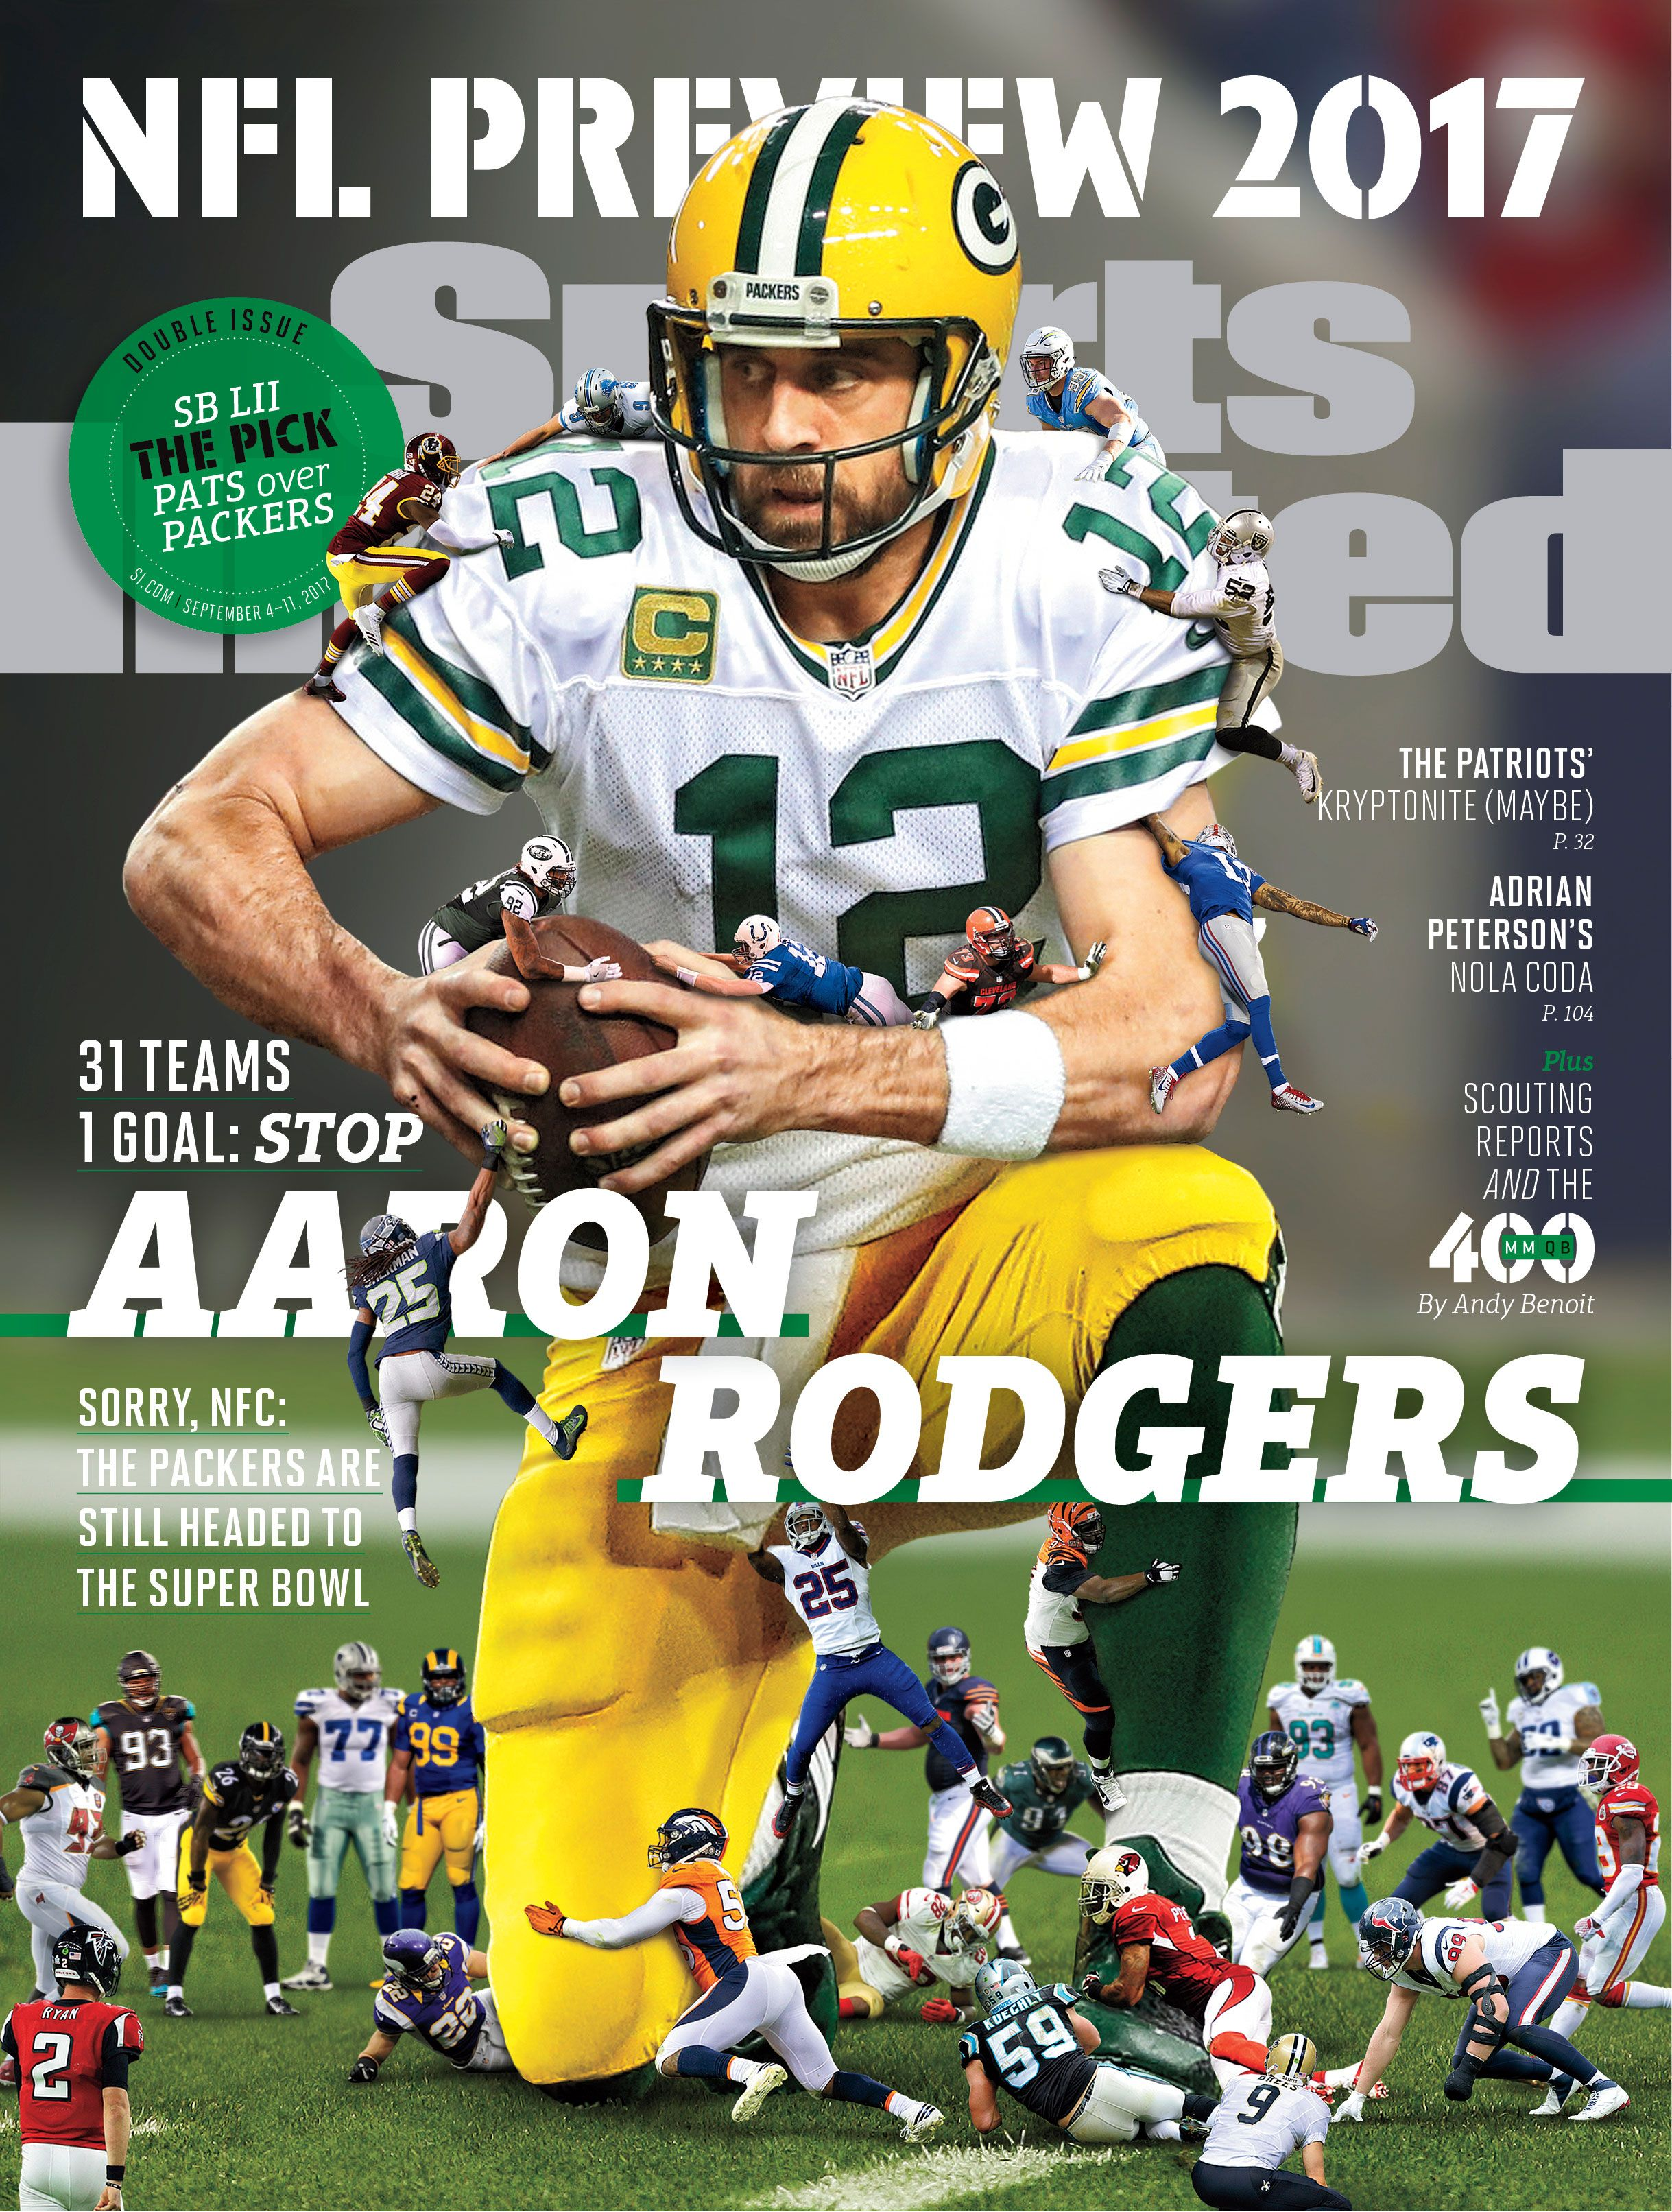 Sports Illustrated 2017 Nfl Preview Covers Sports Illustrated Covers Aaron Rodgers Green Bay Packers Football